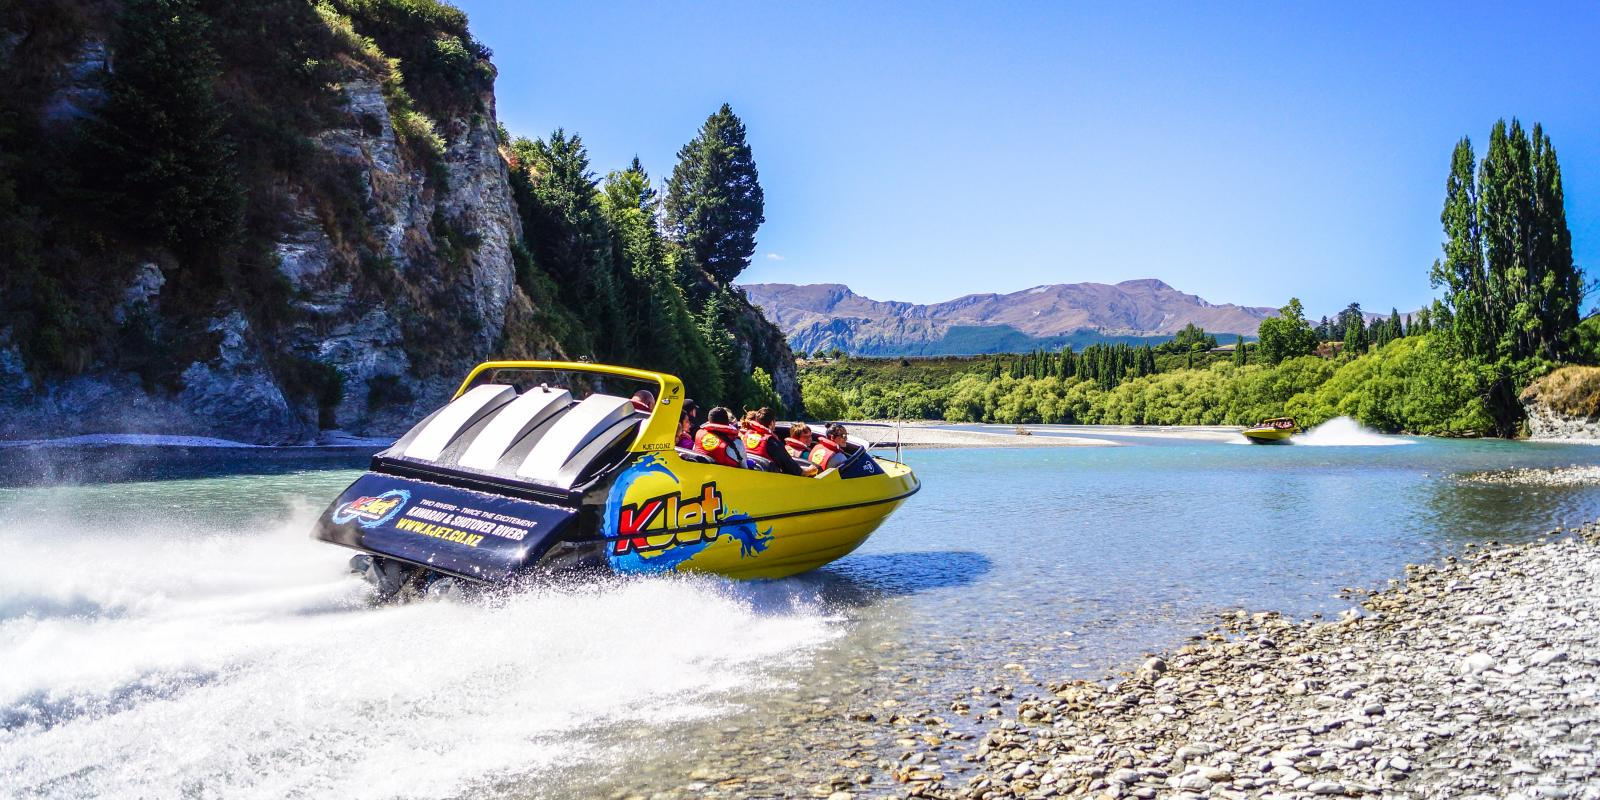 KJet jet boating on the Shotover River